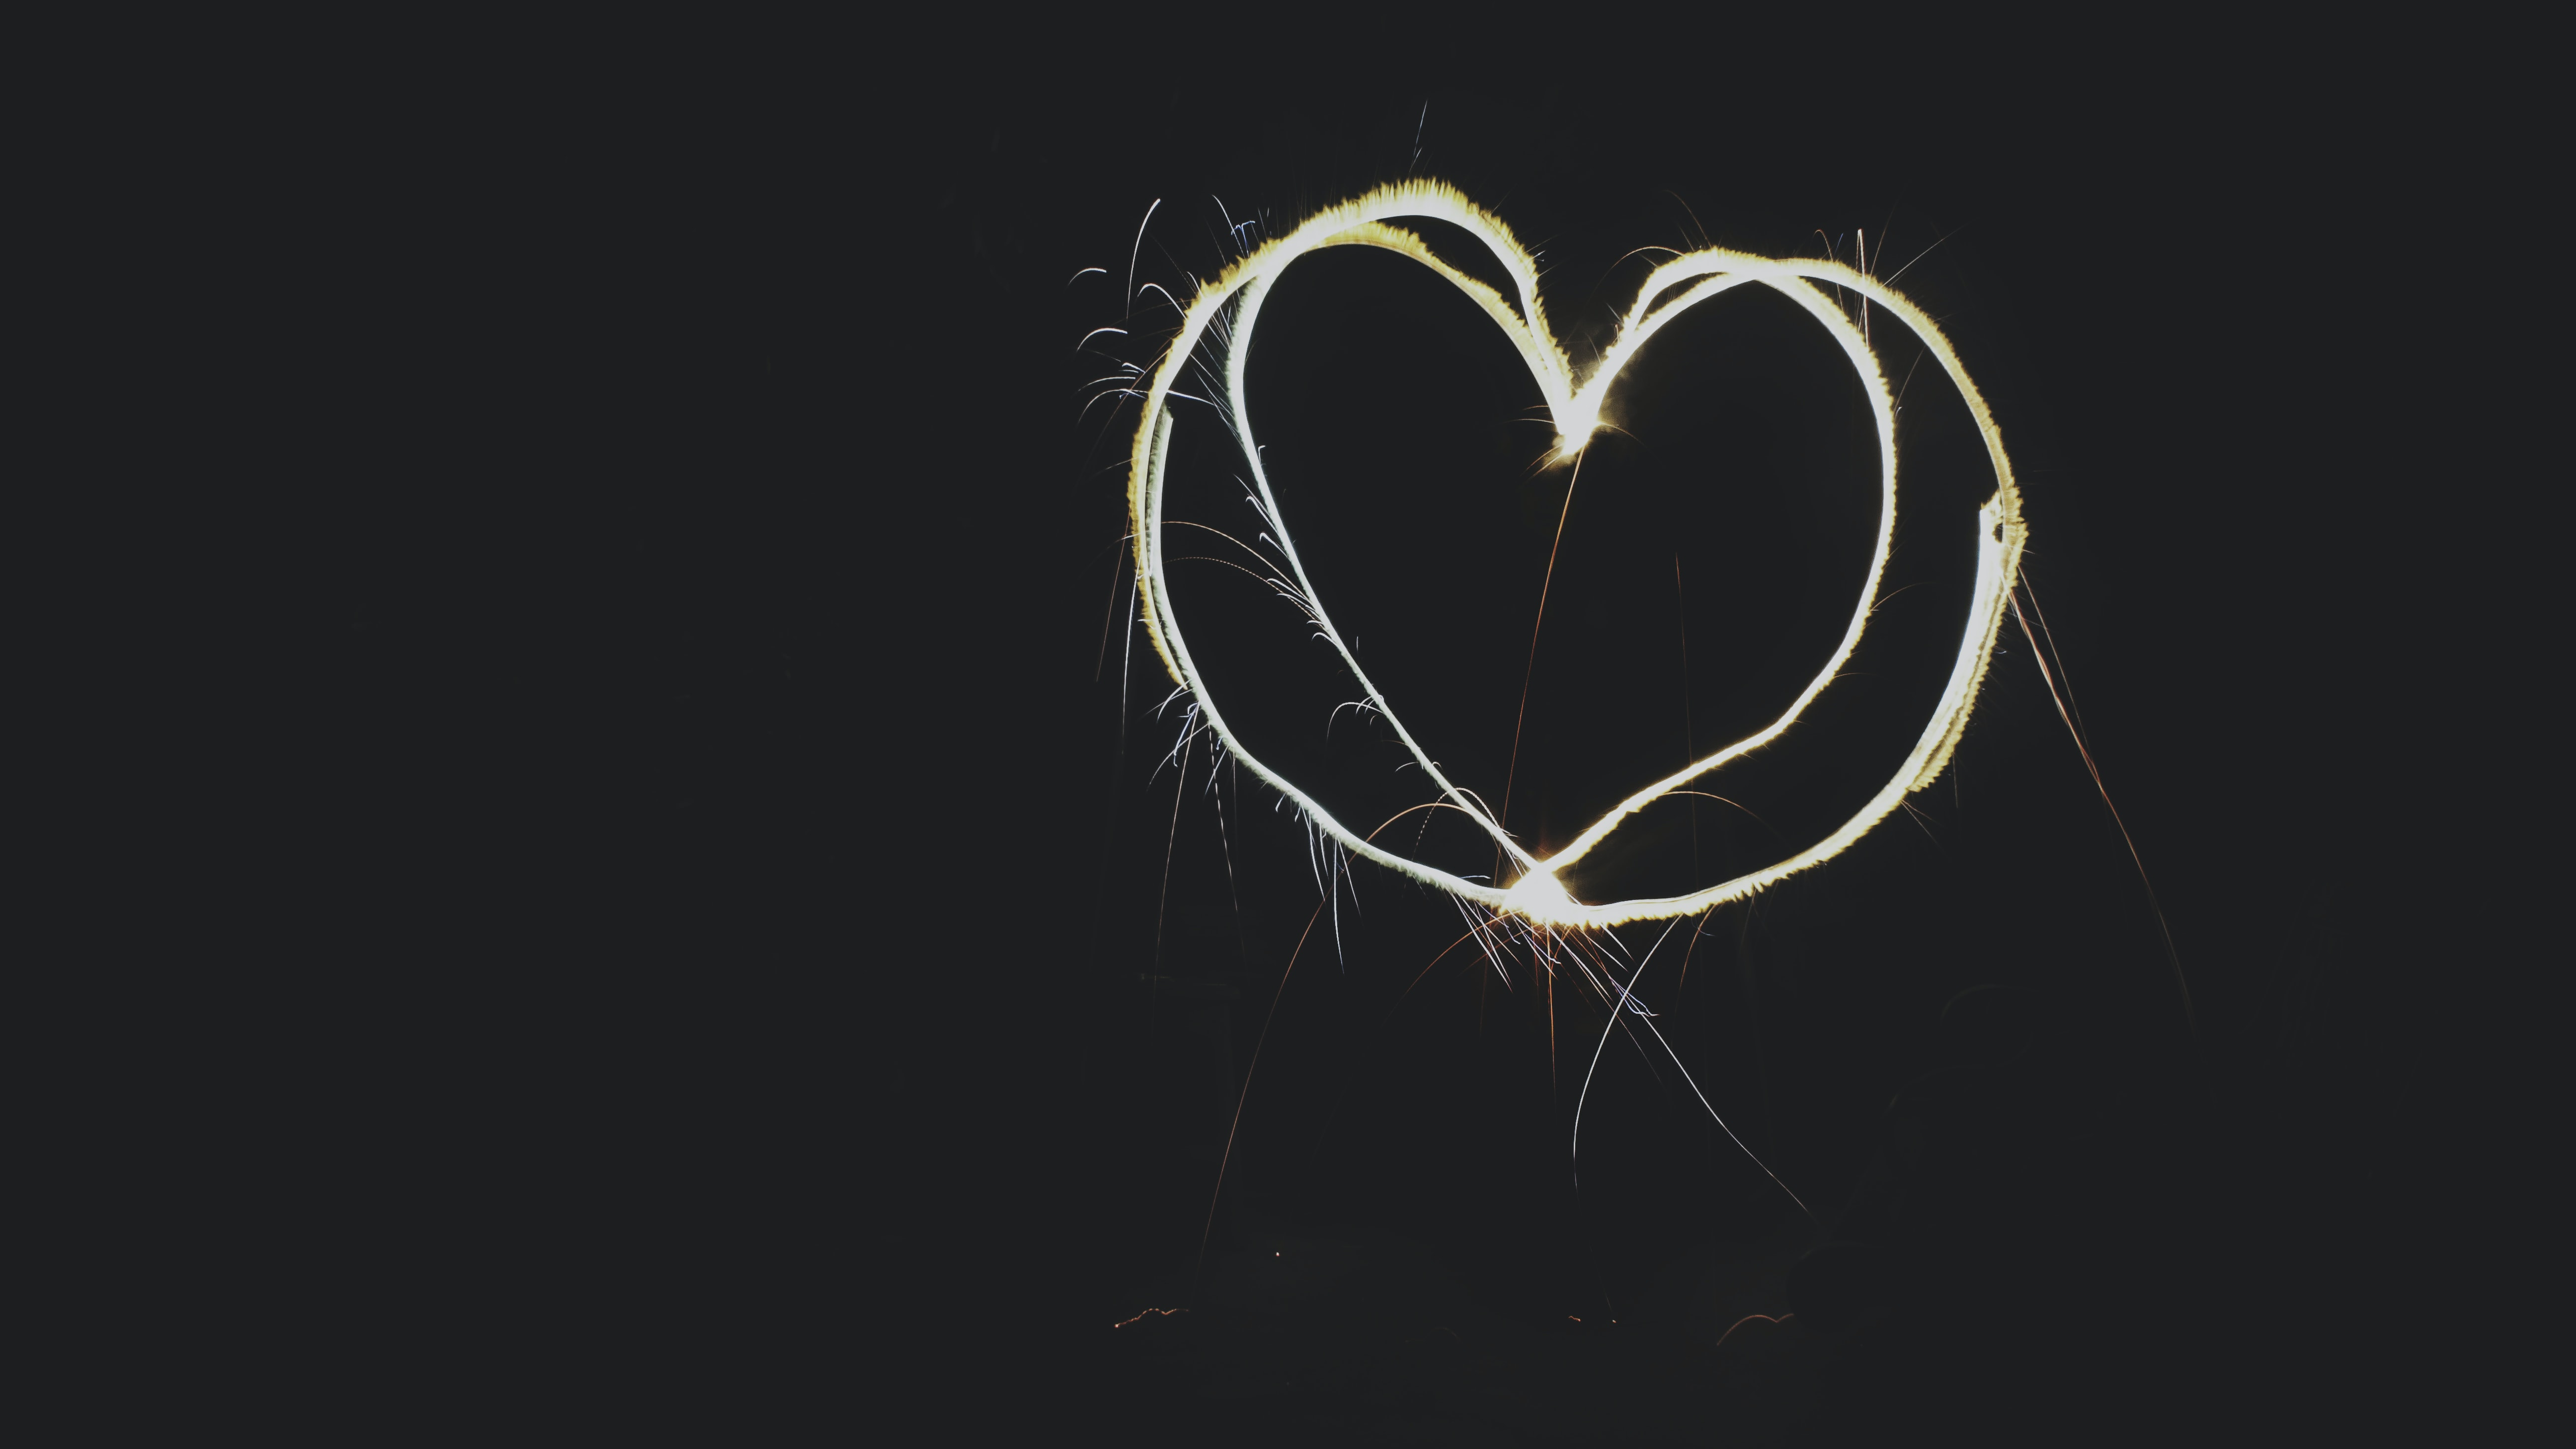 A heart-shaped sparkler against a black background